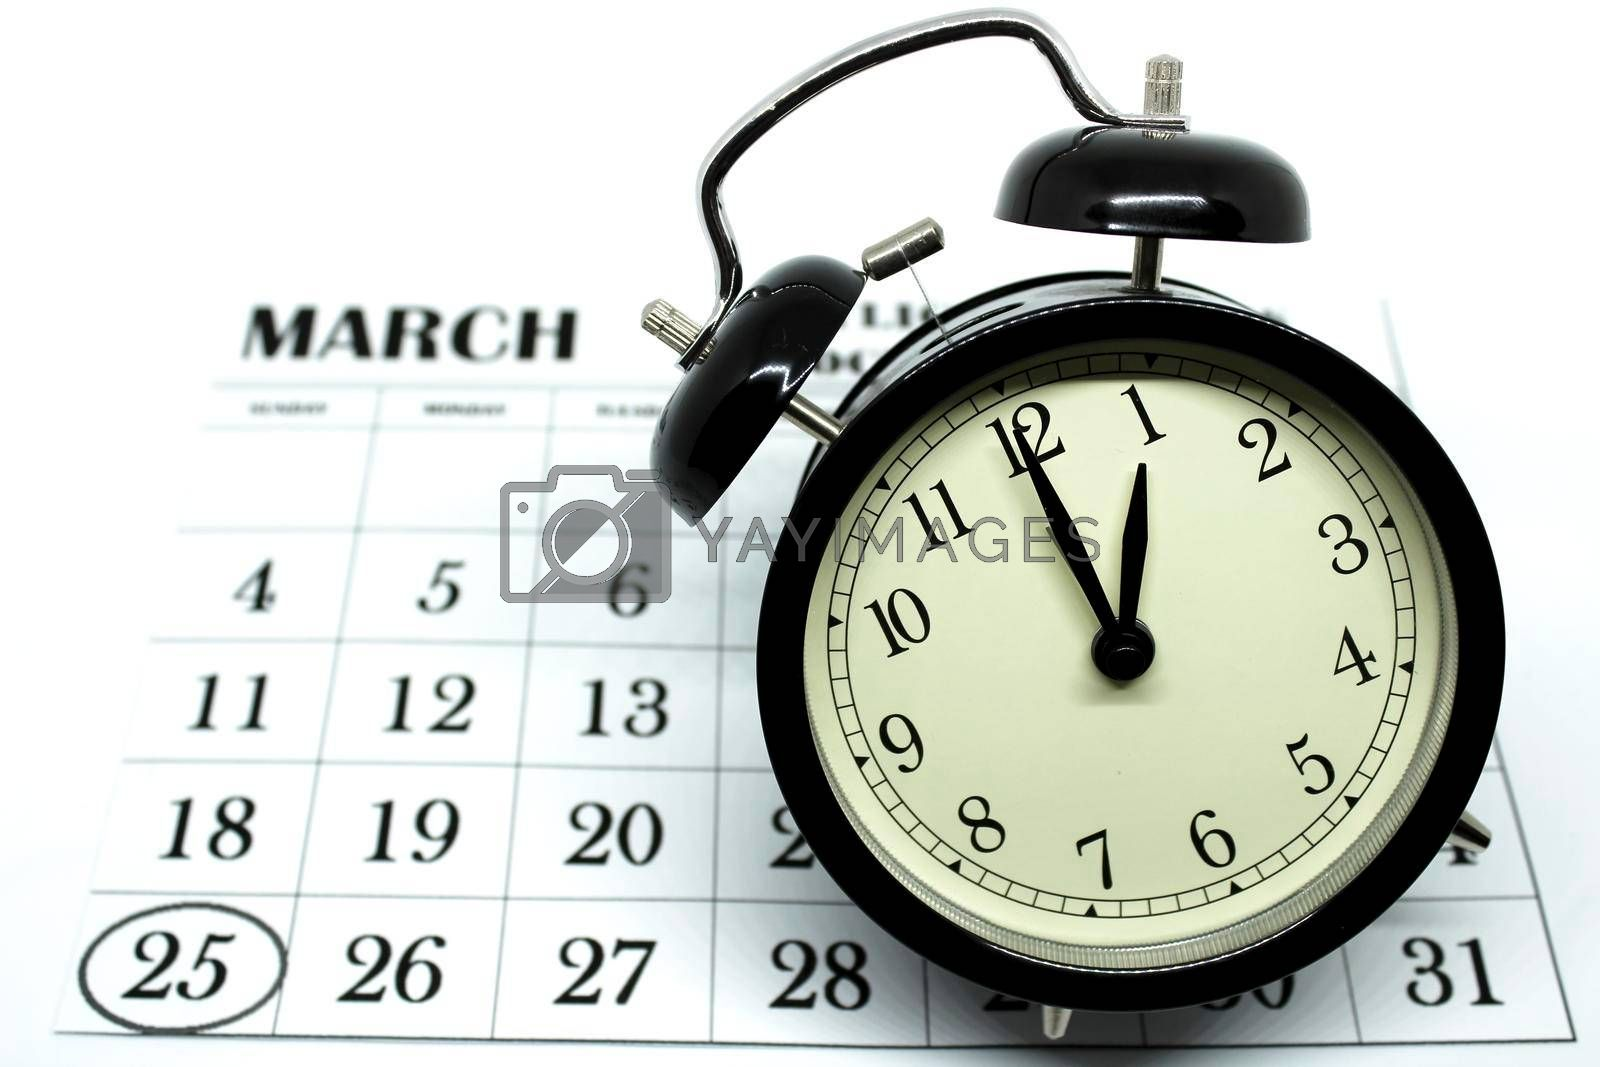 Daylight Savings Spring Forward sunday at 1:00 a.m. March 25 date indicated in the calendar.